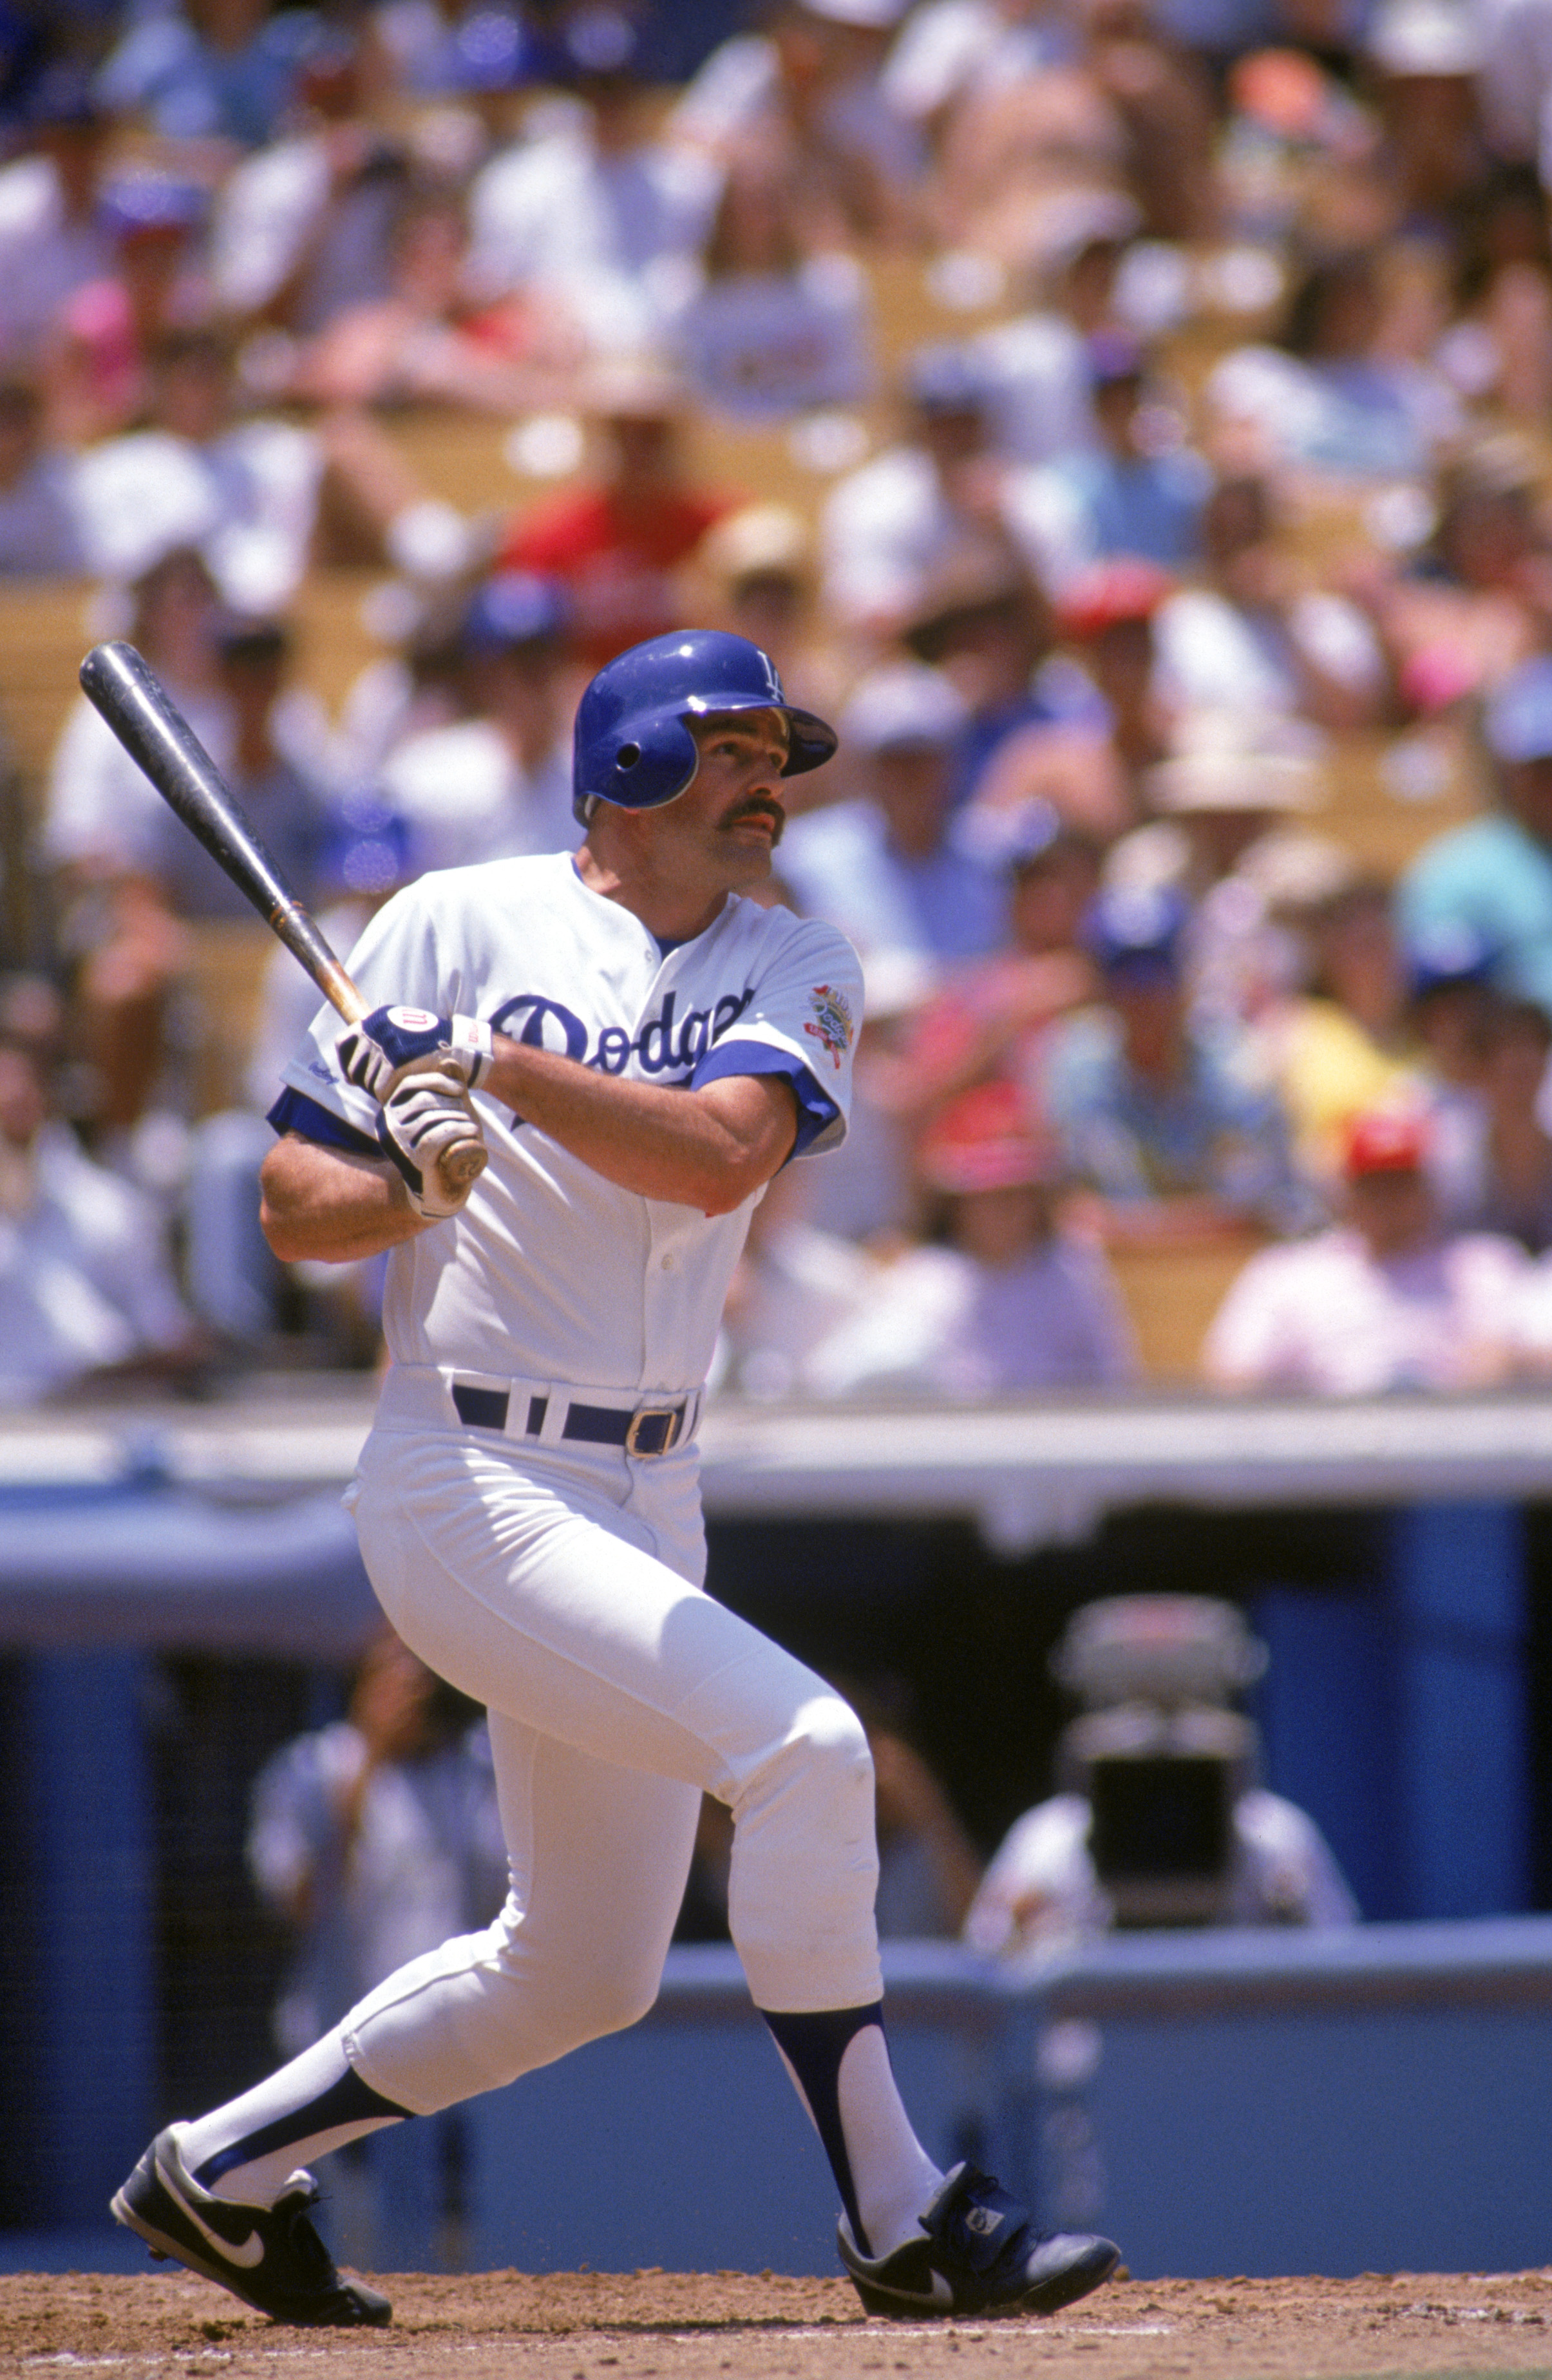 LOS ANGELES - 1990:  Kirk Gibson #23 of the Los Angeles Dodgers swings at a pitch during a 1990 game at Dodger Stadium in Los Angeles, California. (Photo by Ken Levine/Getty Images)